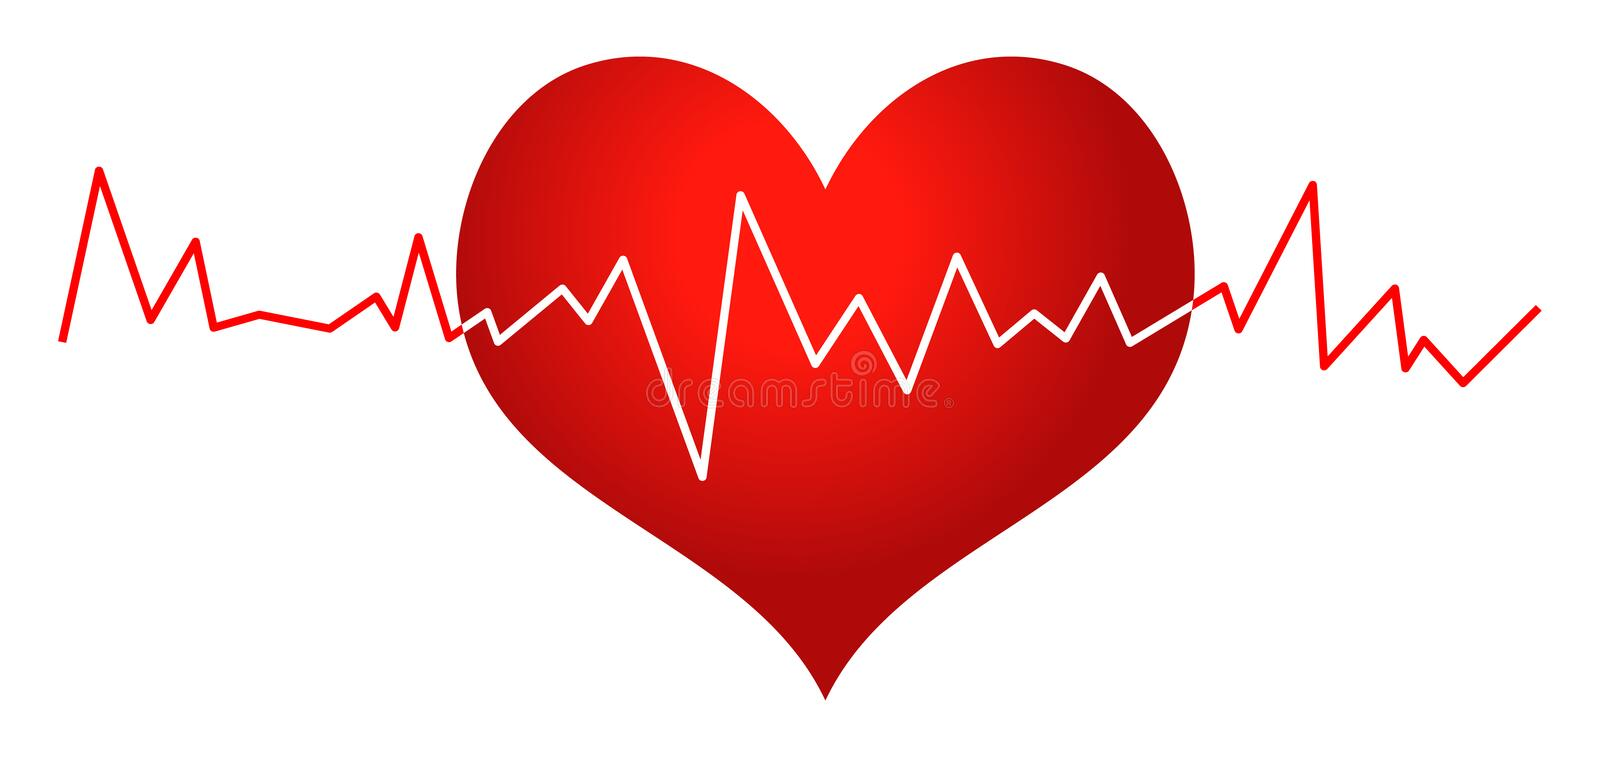 red heart and heartbeat clip art stock vector illustration of rh dreamstime com heartbeat clipart png heartbeat clipart images